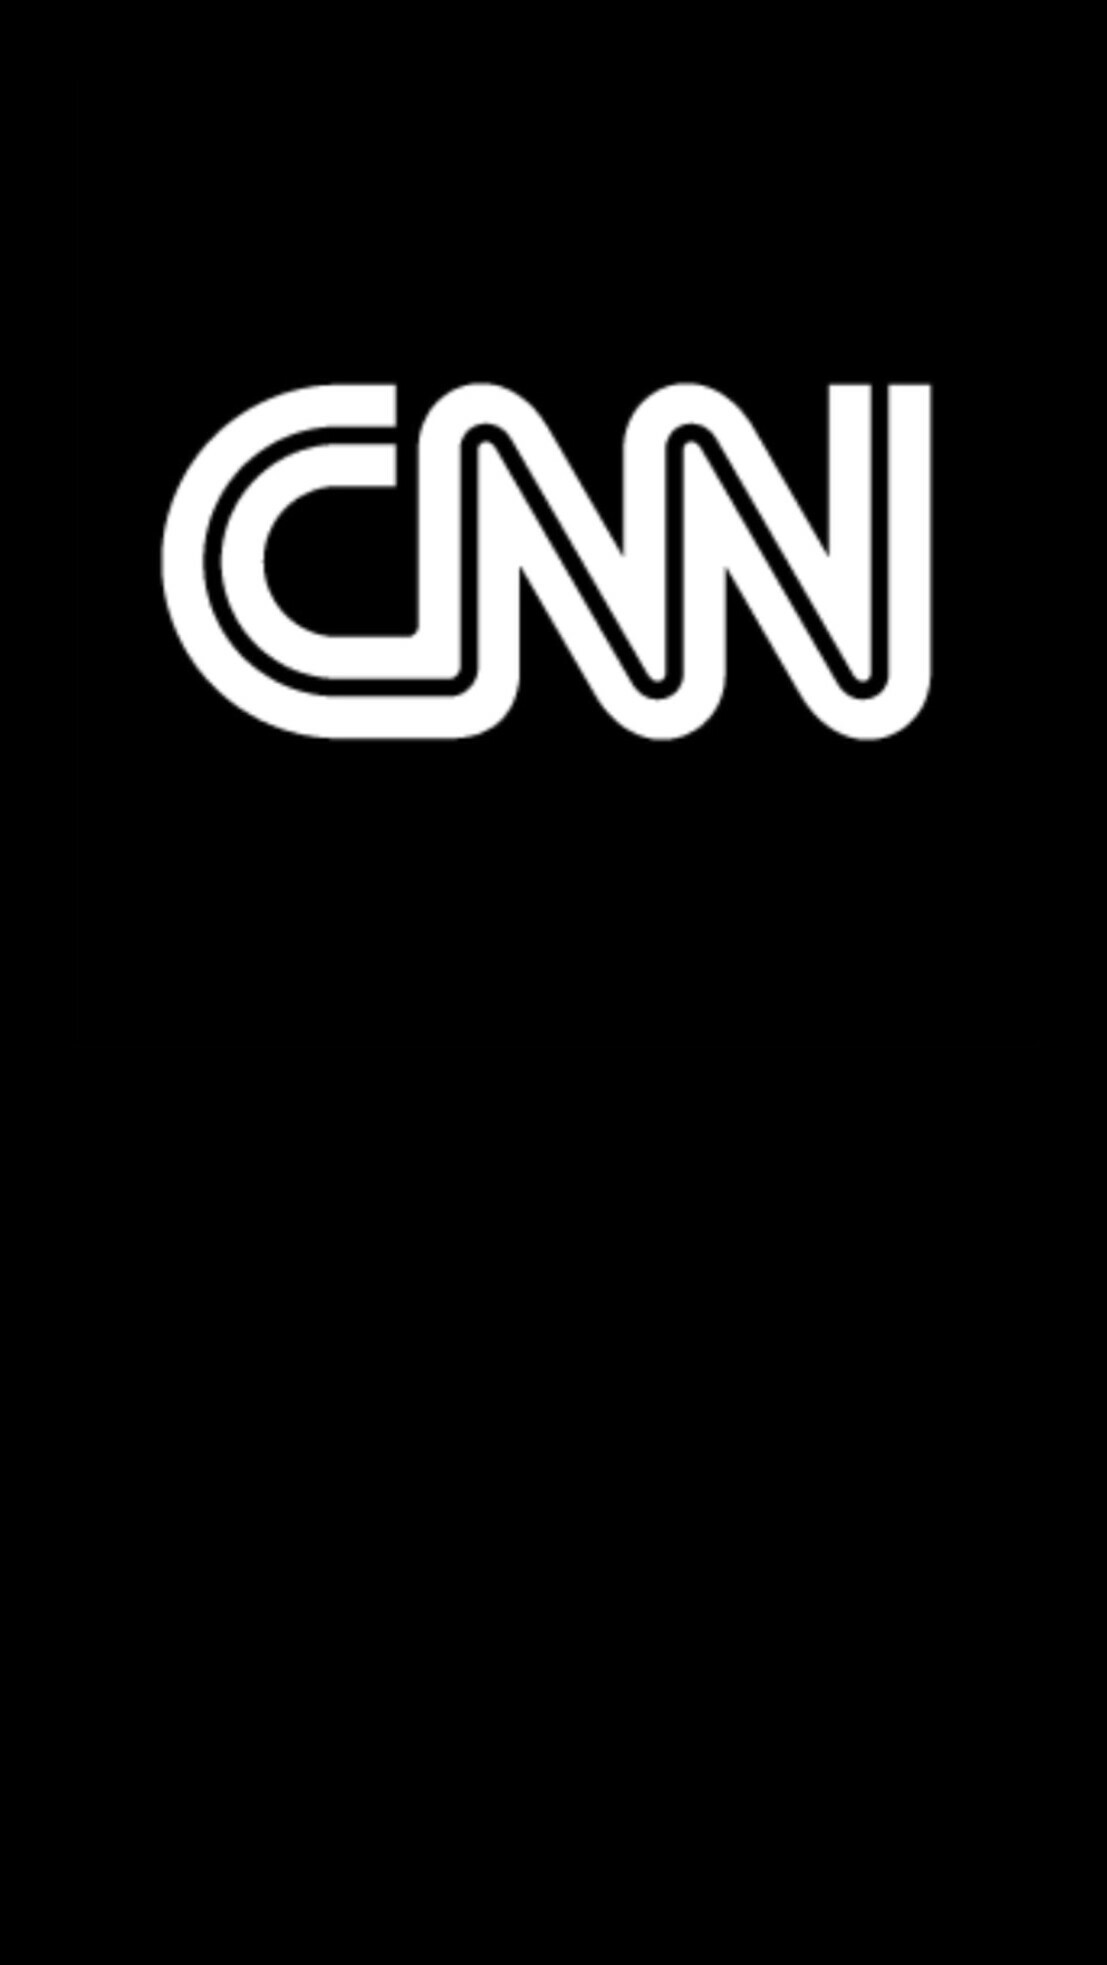 Wiki leaks hack confirms CNN and ABC, two of the most watched news and  media outlets are working towards the common goal of getting Hillary Clinton  elected.